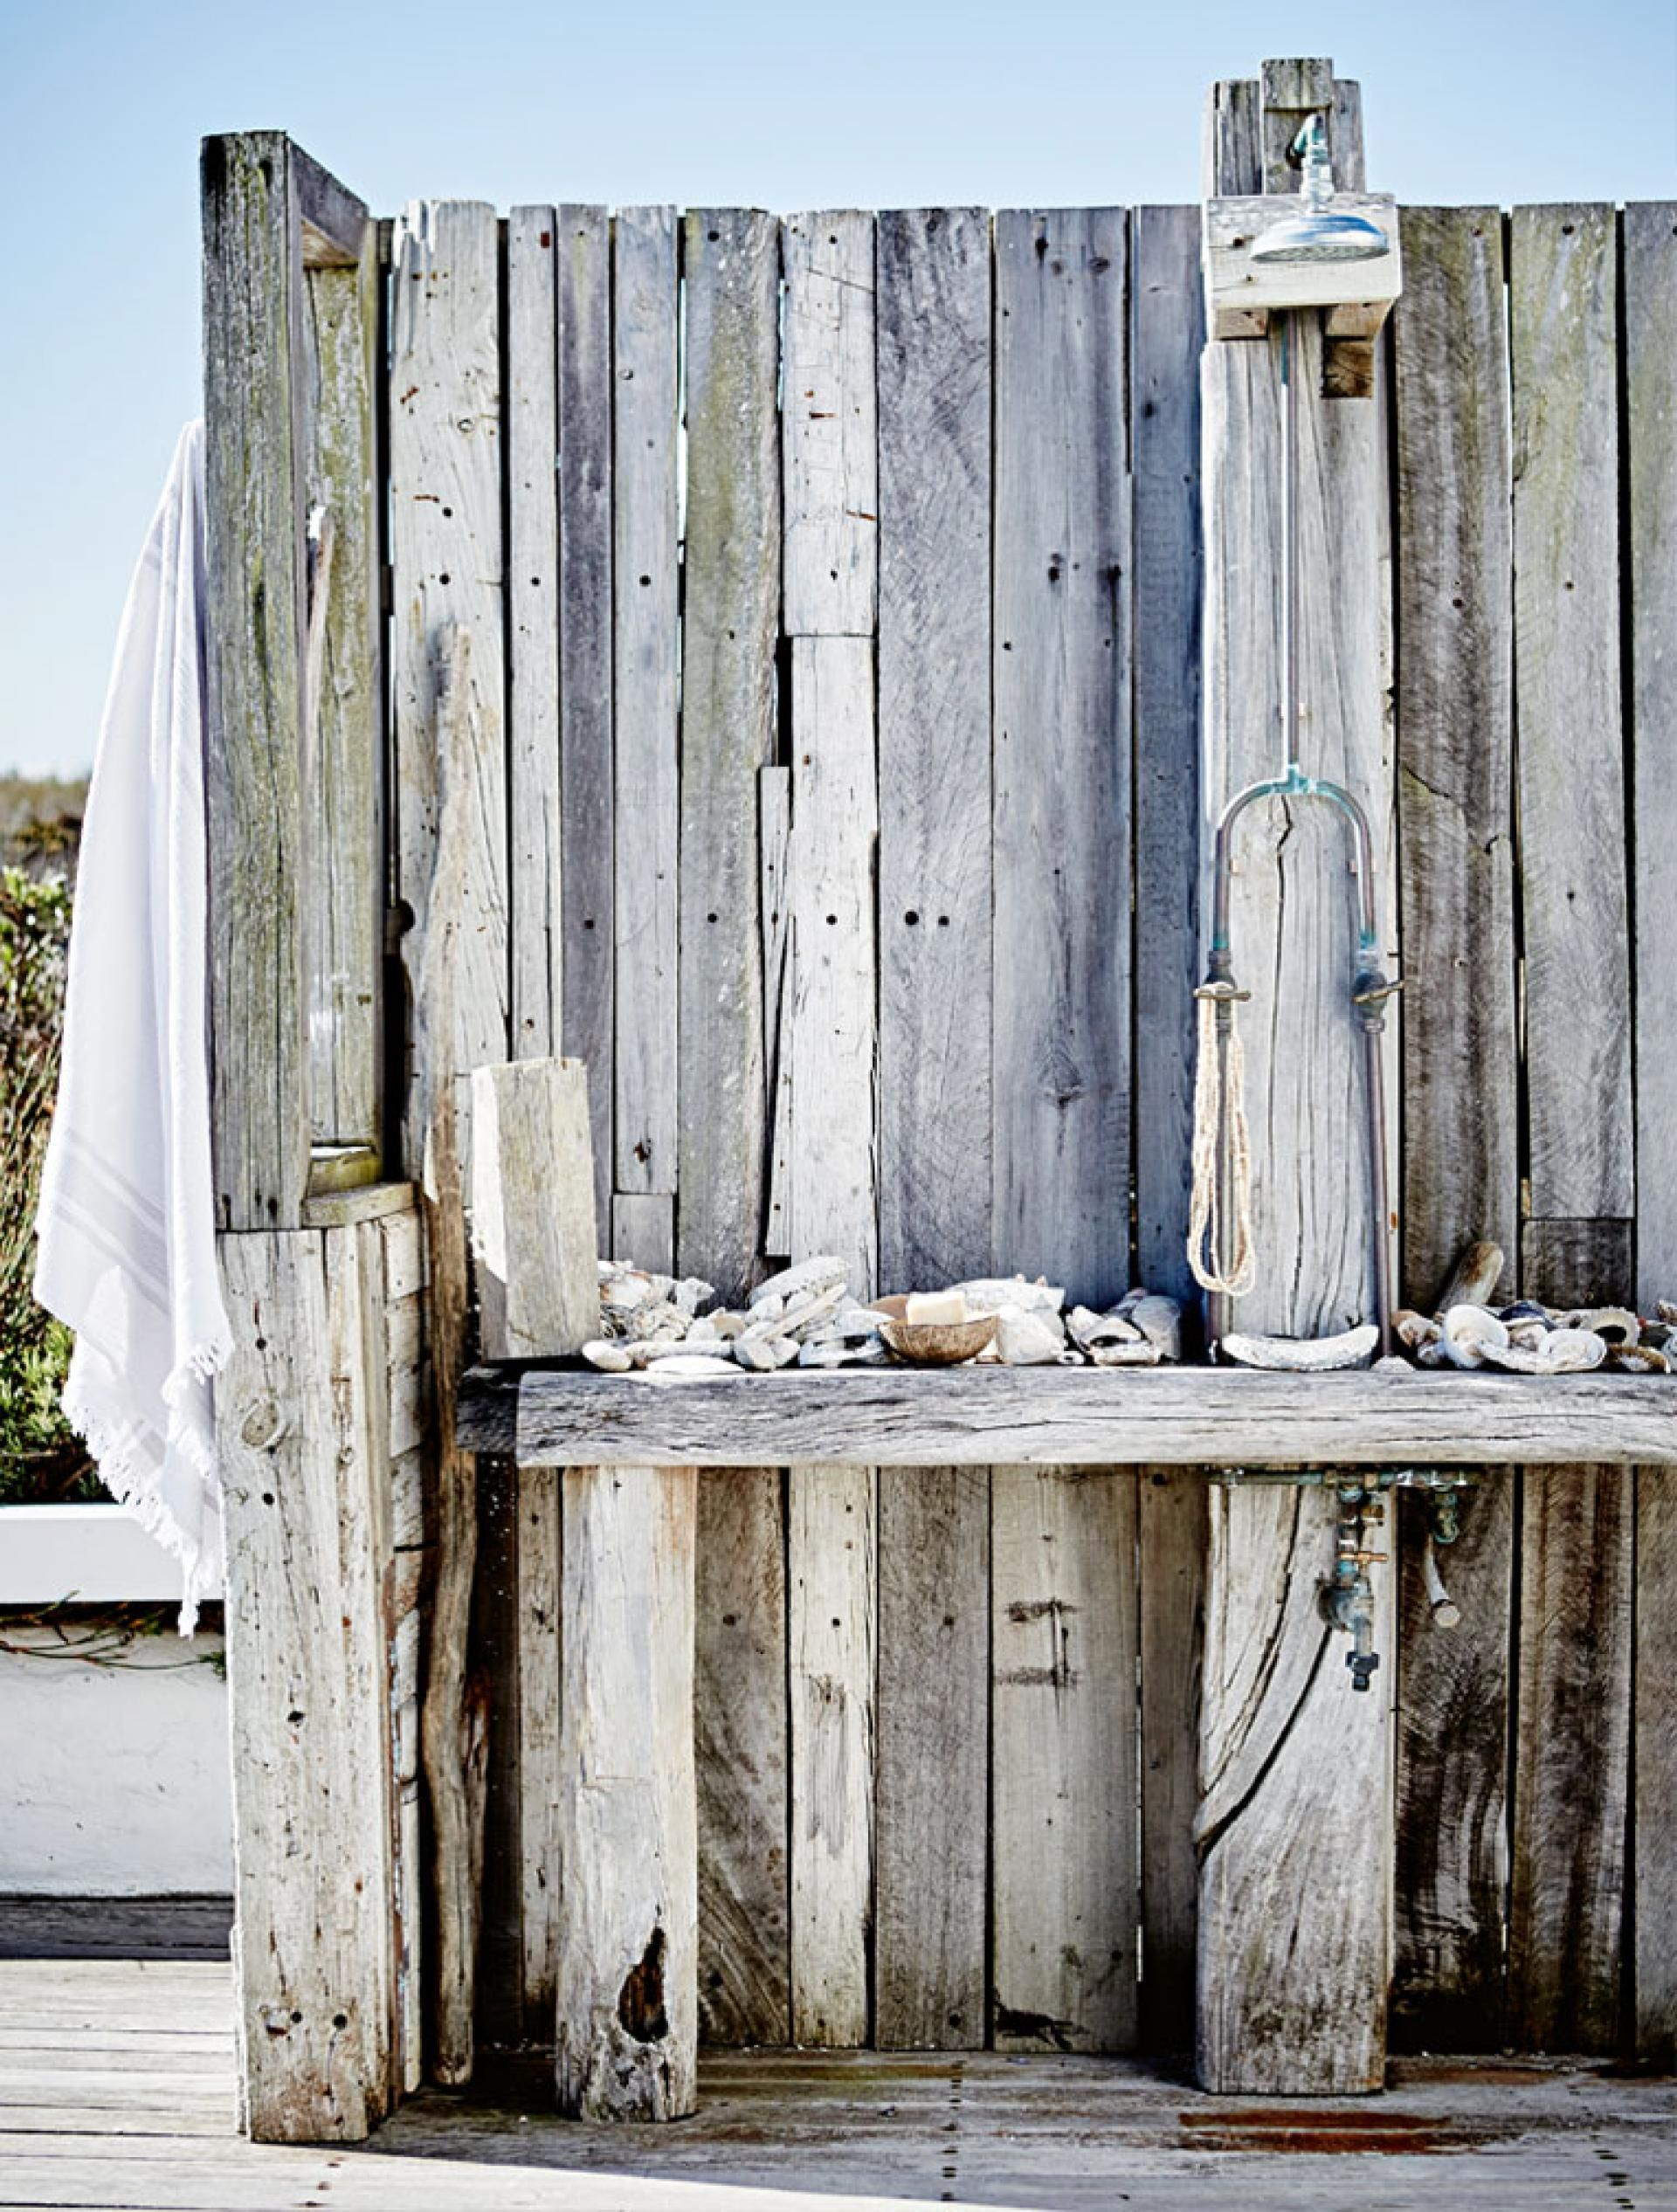 The outdoor shower of a coastal home in South Africa from the December 2015 issue of Inside Out magazine. Production by Sven Alberding/bureaux.co.za. Photography by Warren Heath/bureaux.co.za. Available from newsagents, Zinio, www.zinio.com, Google Play, play.google.com/..., Apple's Newsstand, itunes.apple.com/... and Nook.